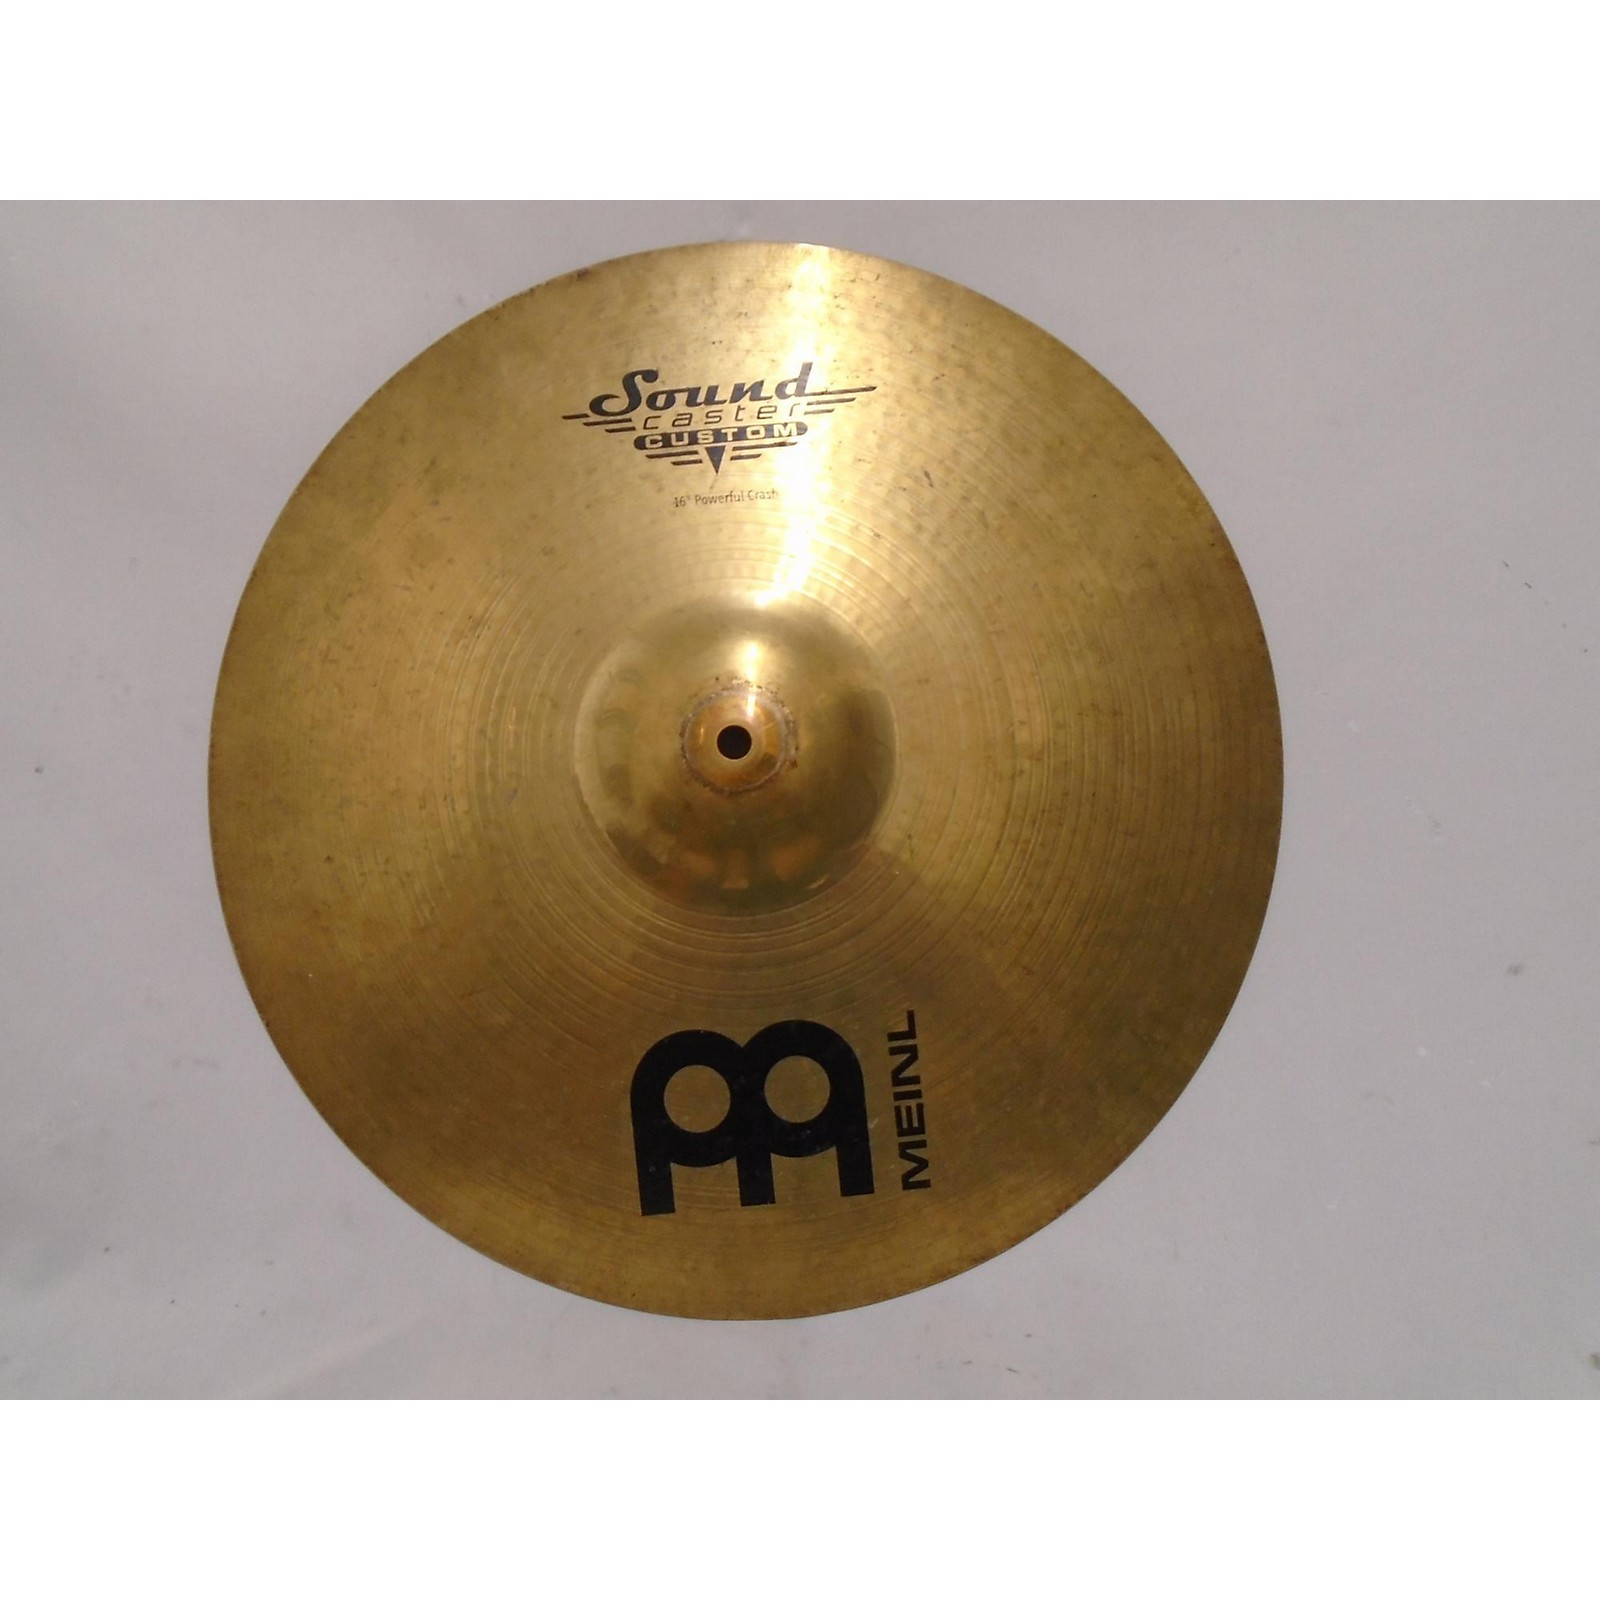 Meinl 16in Sound Caster Fusion Powerful Crash Cymbal